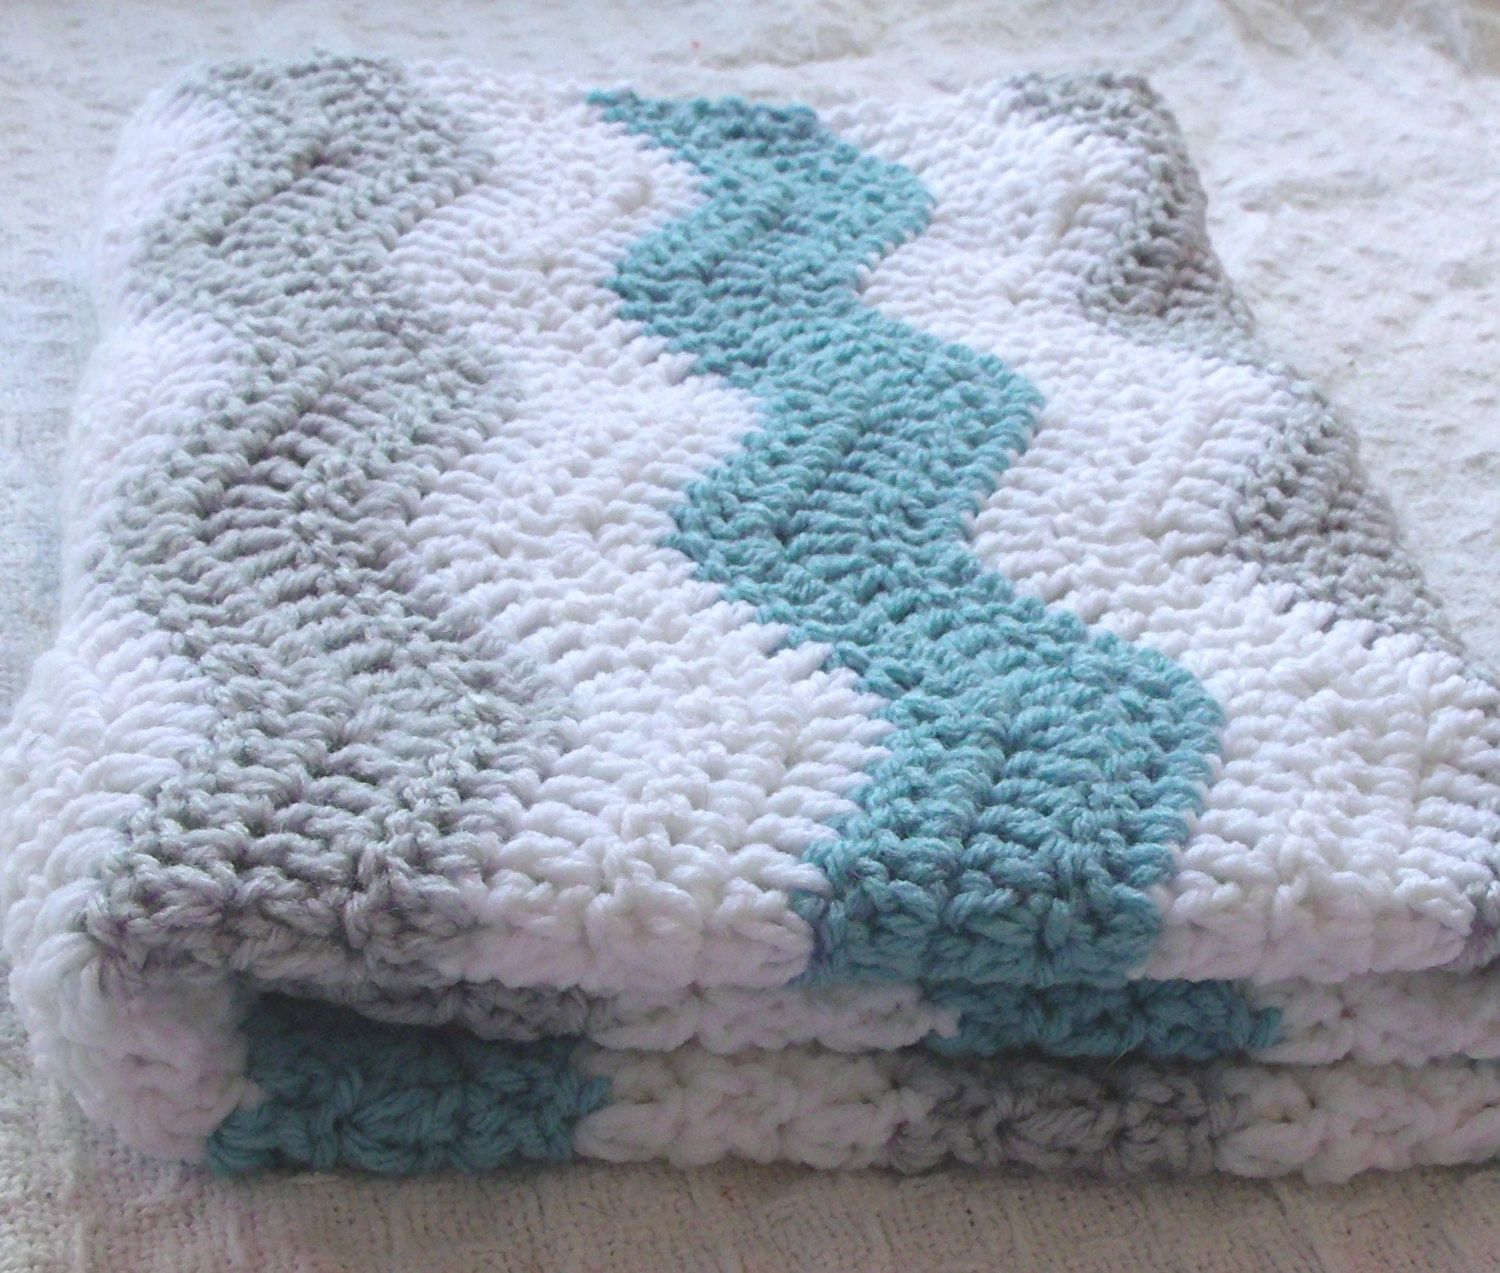 Aqua gray and white chevron blanketandma i want you to aqua blue and gray baby boy chevron blanket crochet blue baby blanket teal gray nursery aqua gray nursery bedding chevron bedding bankloansurffo Image collections